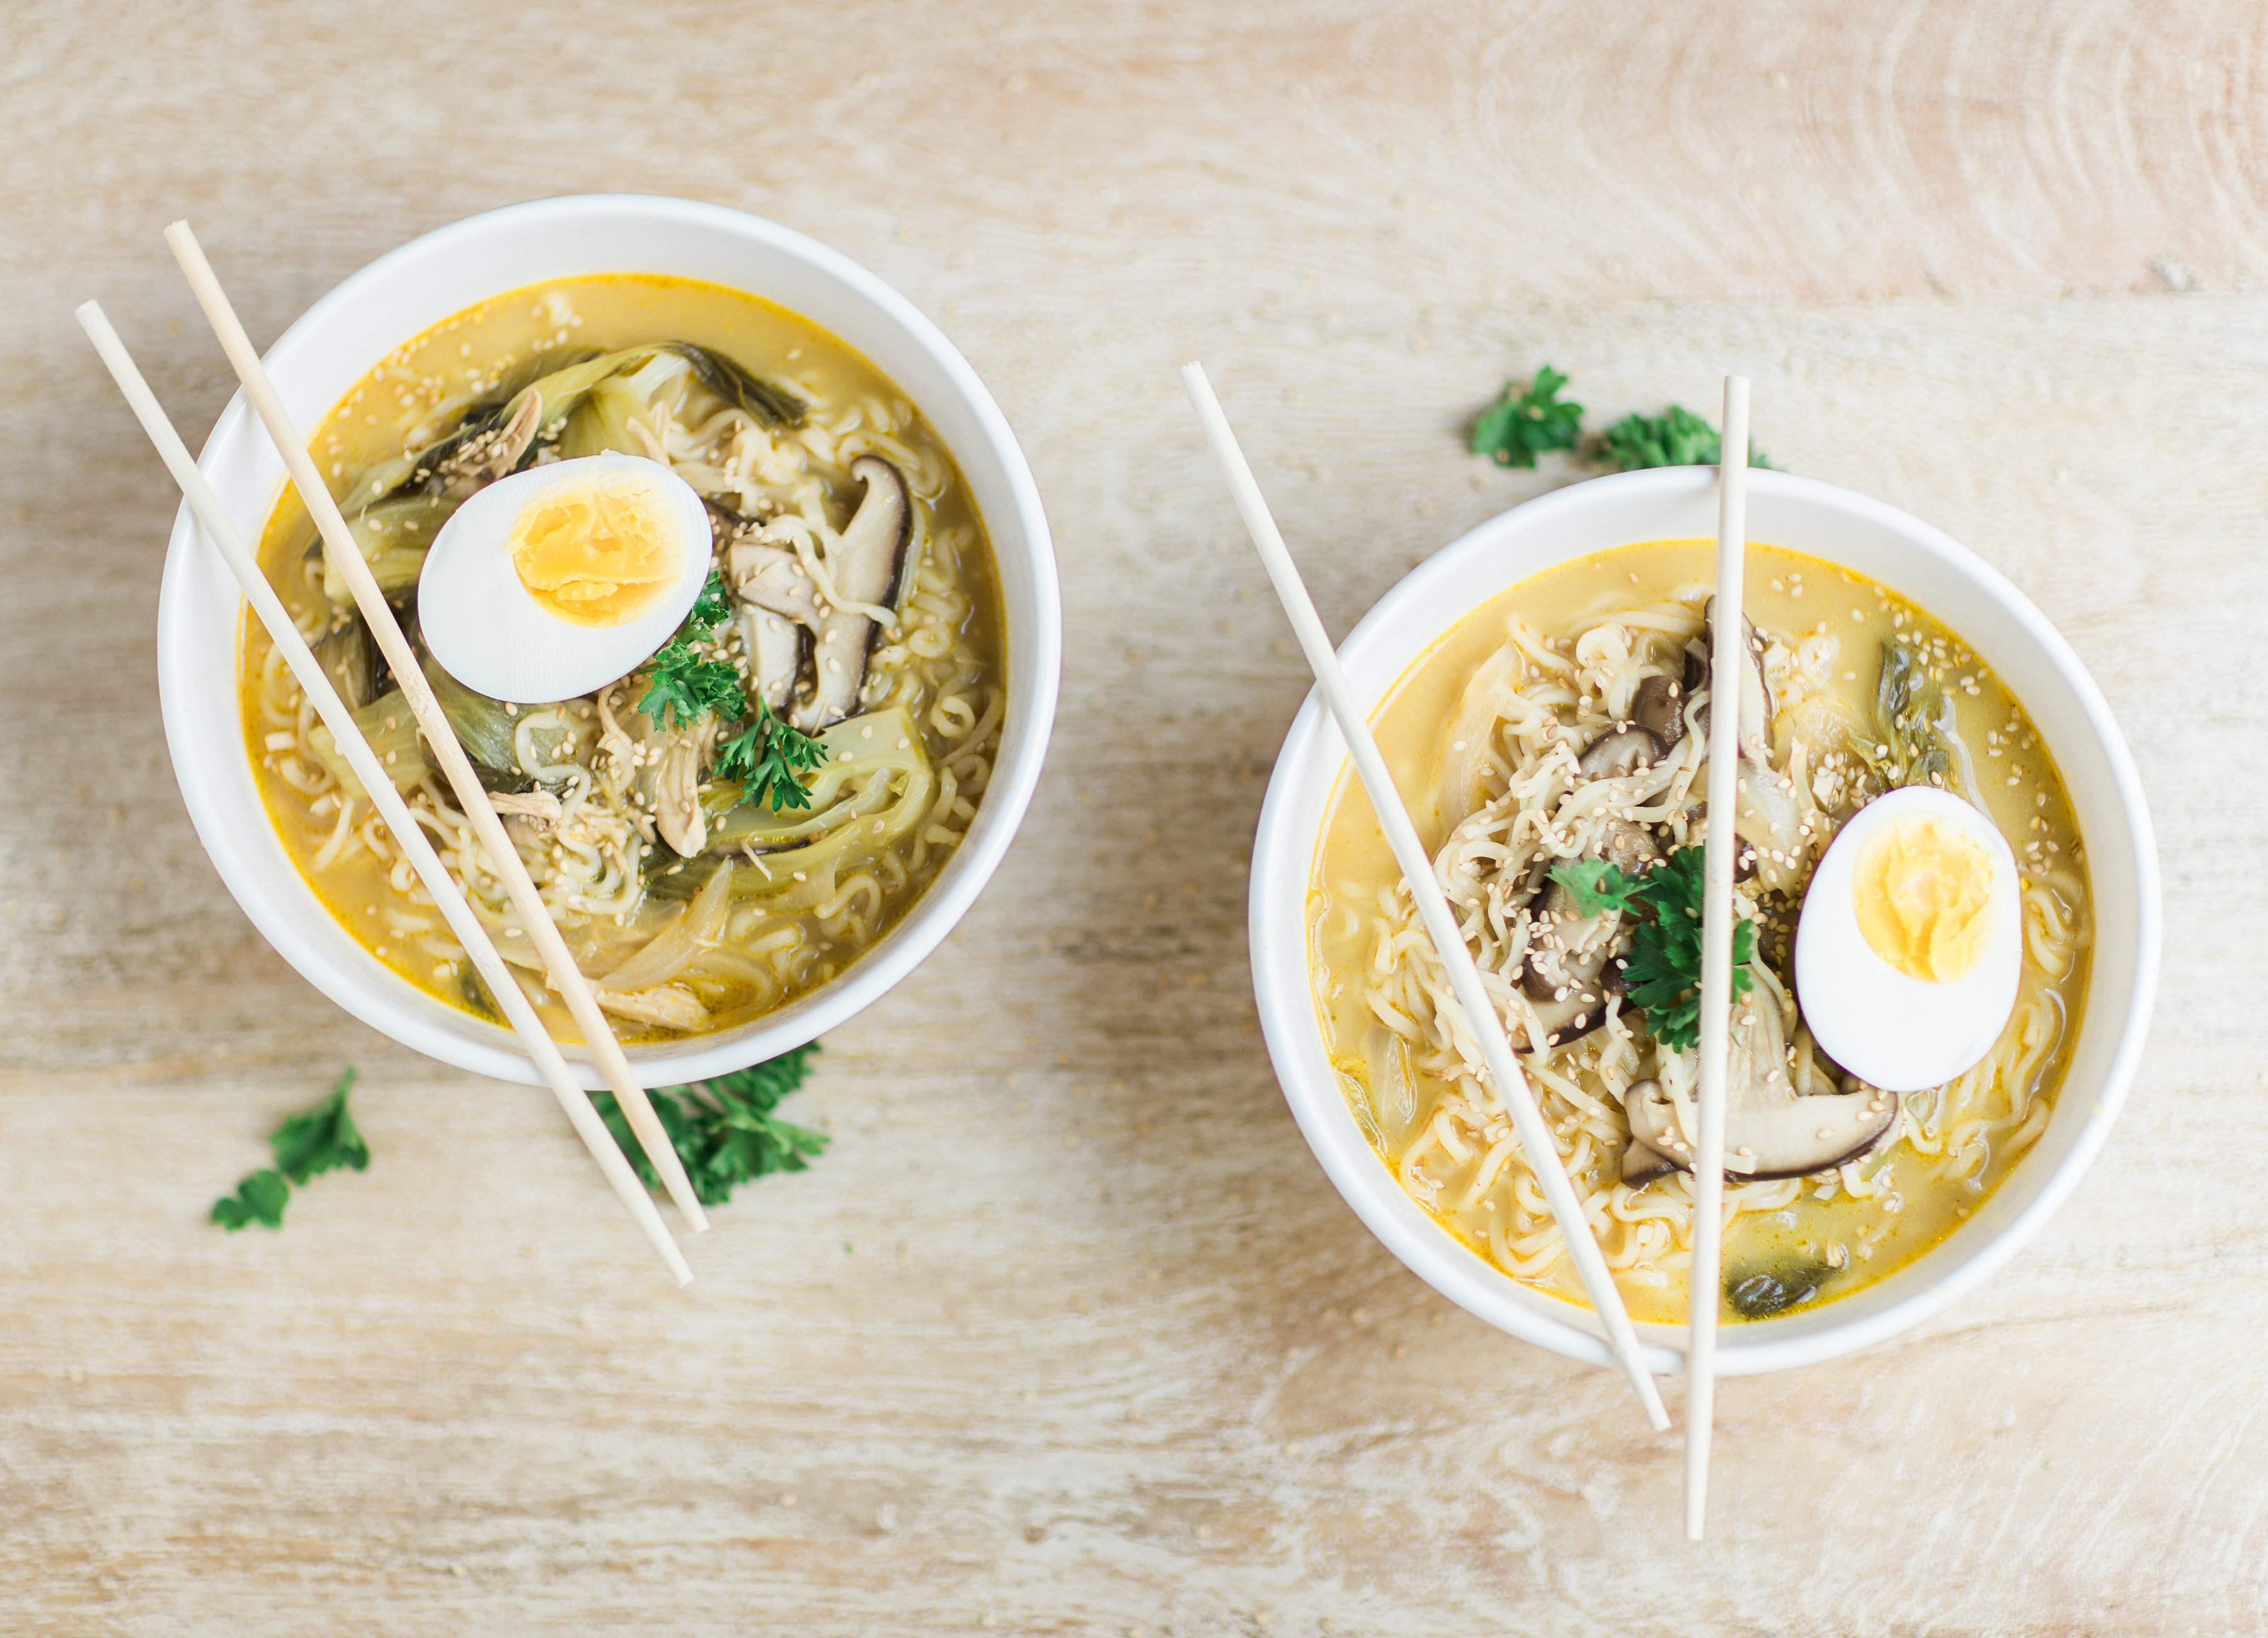 Simple Ramen Noodles Recipe in Under 15 Minutes by lifestyle blogger Lexi of Glitter, Inc.